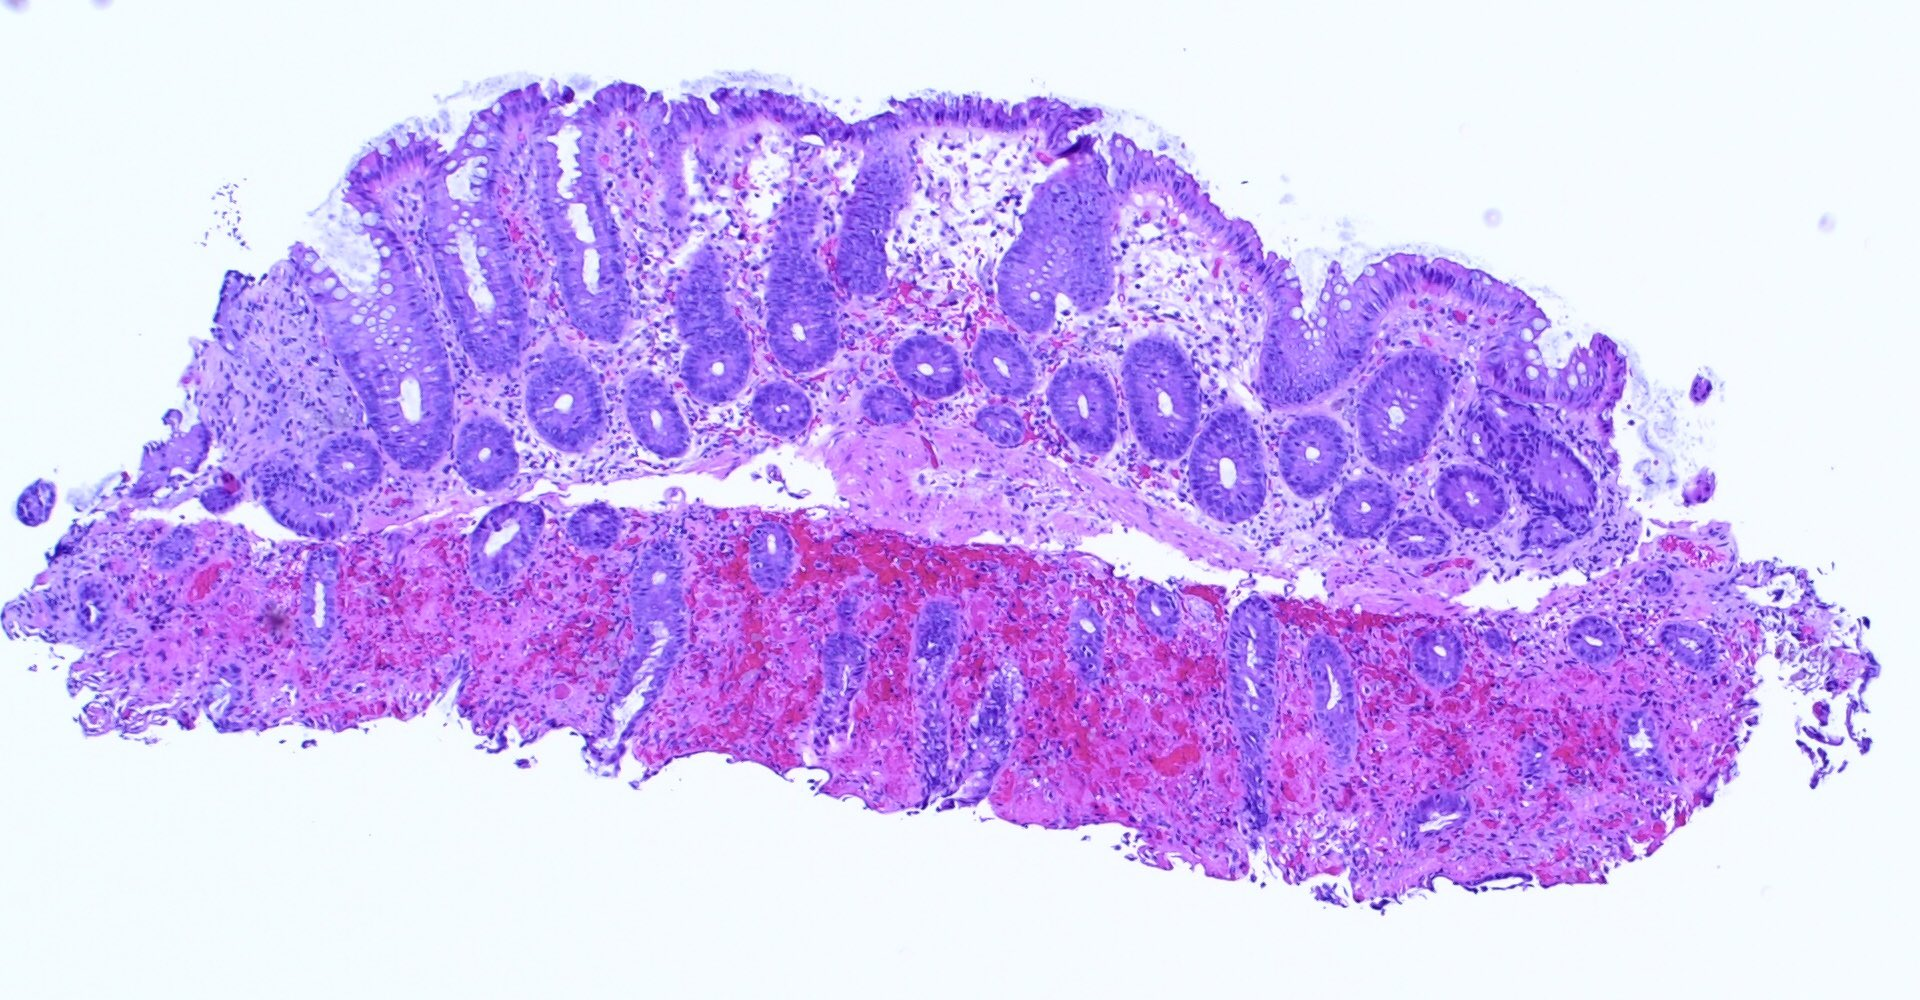 #GIpath Injury Patterns 101  Interesting slide which shows an area of ischemic colitis next to an area of normal colon mucosa.  I thought this was a nice opportunity to show the features of ischemic colitis.  Added some annotations, which may be helpful to those starting out. https://t.co/Oz1YyayixD